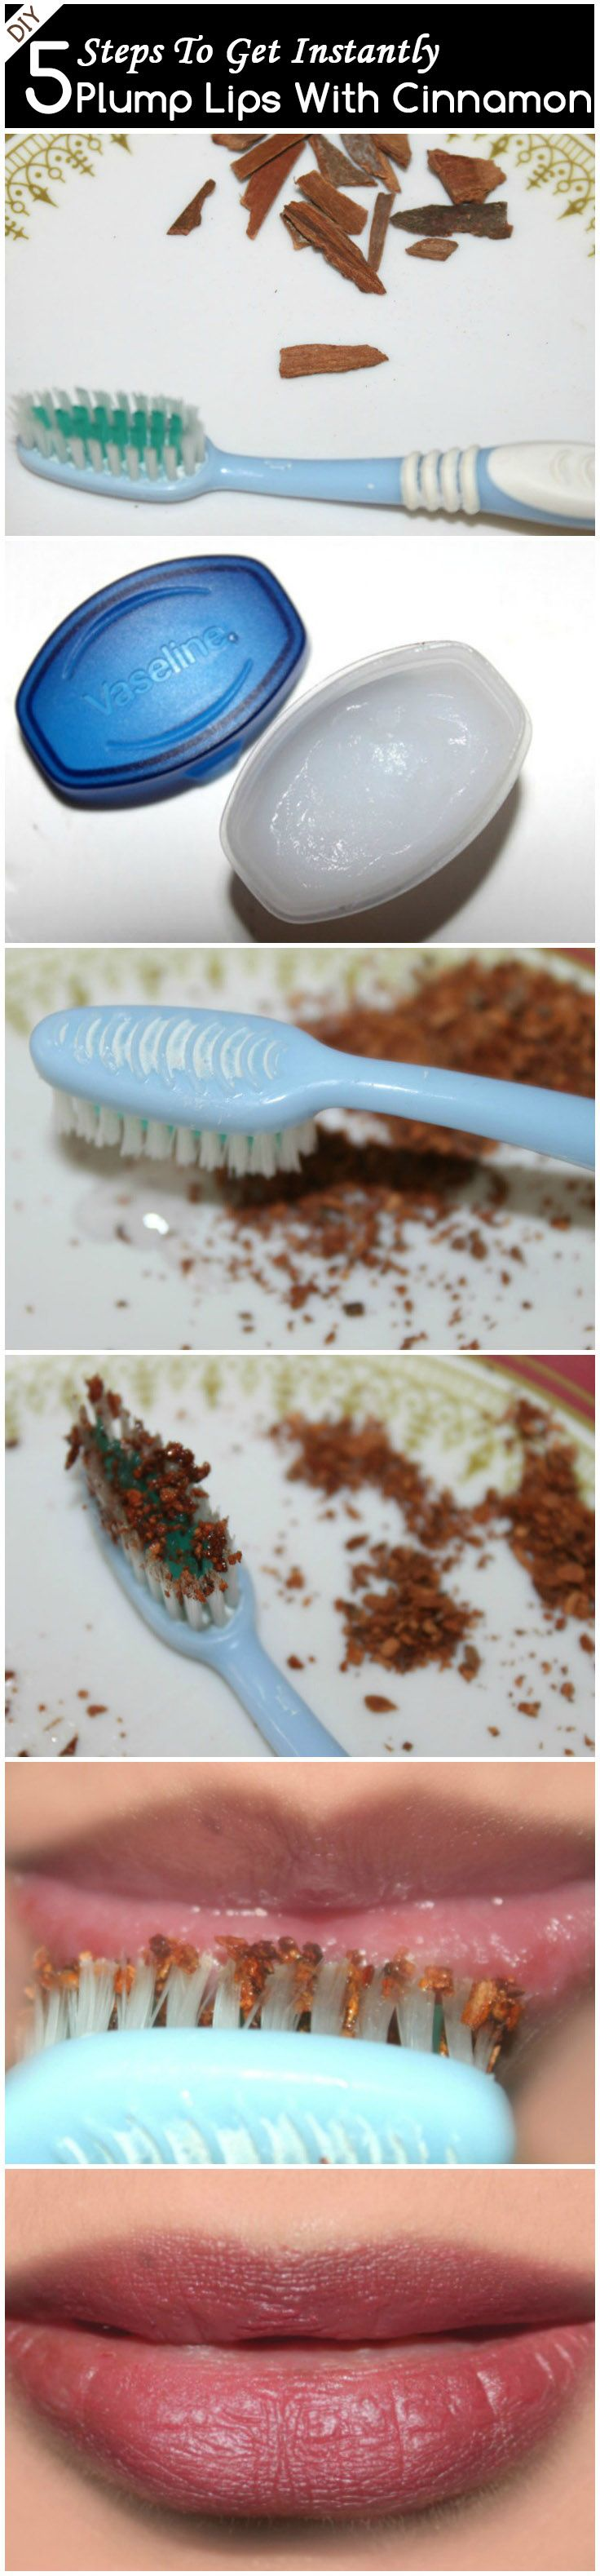 DIY – 5 Easy Steps To Get Instantly Plump Up Your Lips With Cinnamon